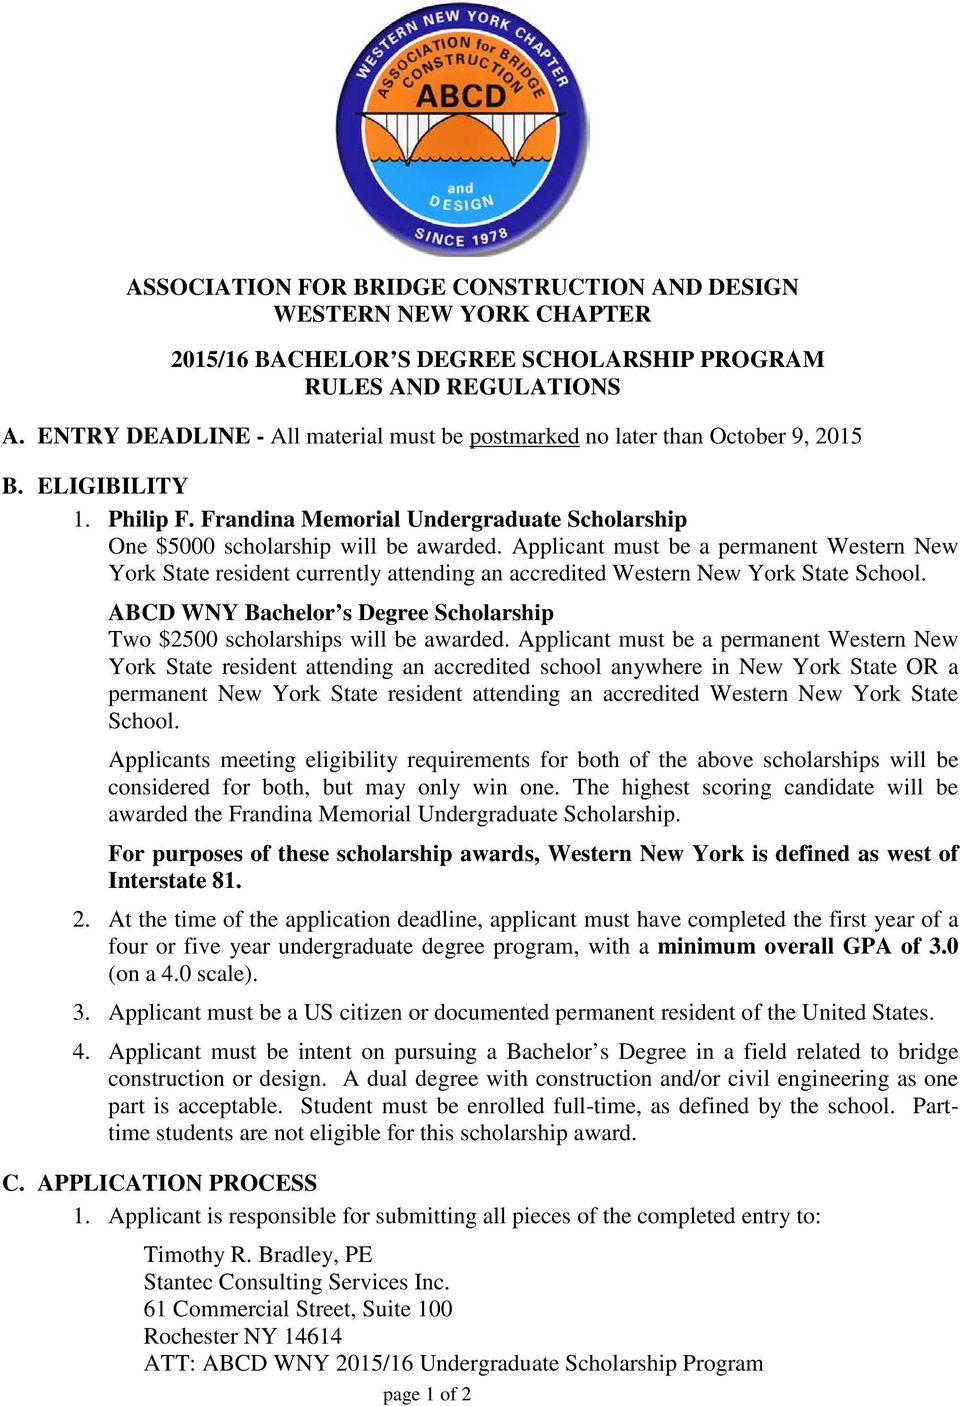 Applicant must be a permanent Western New York State resident currently attending an accredited Western New York State School.